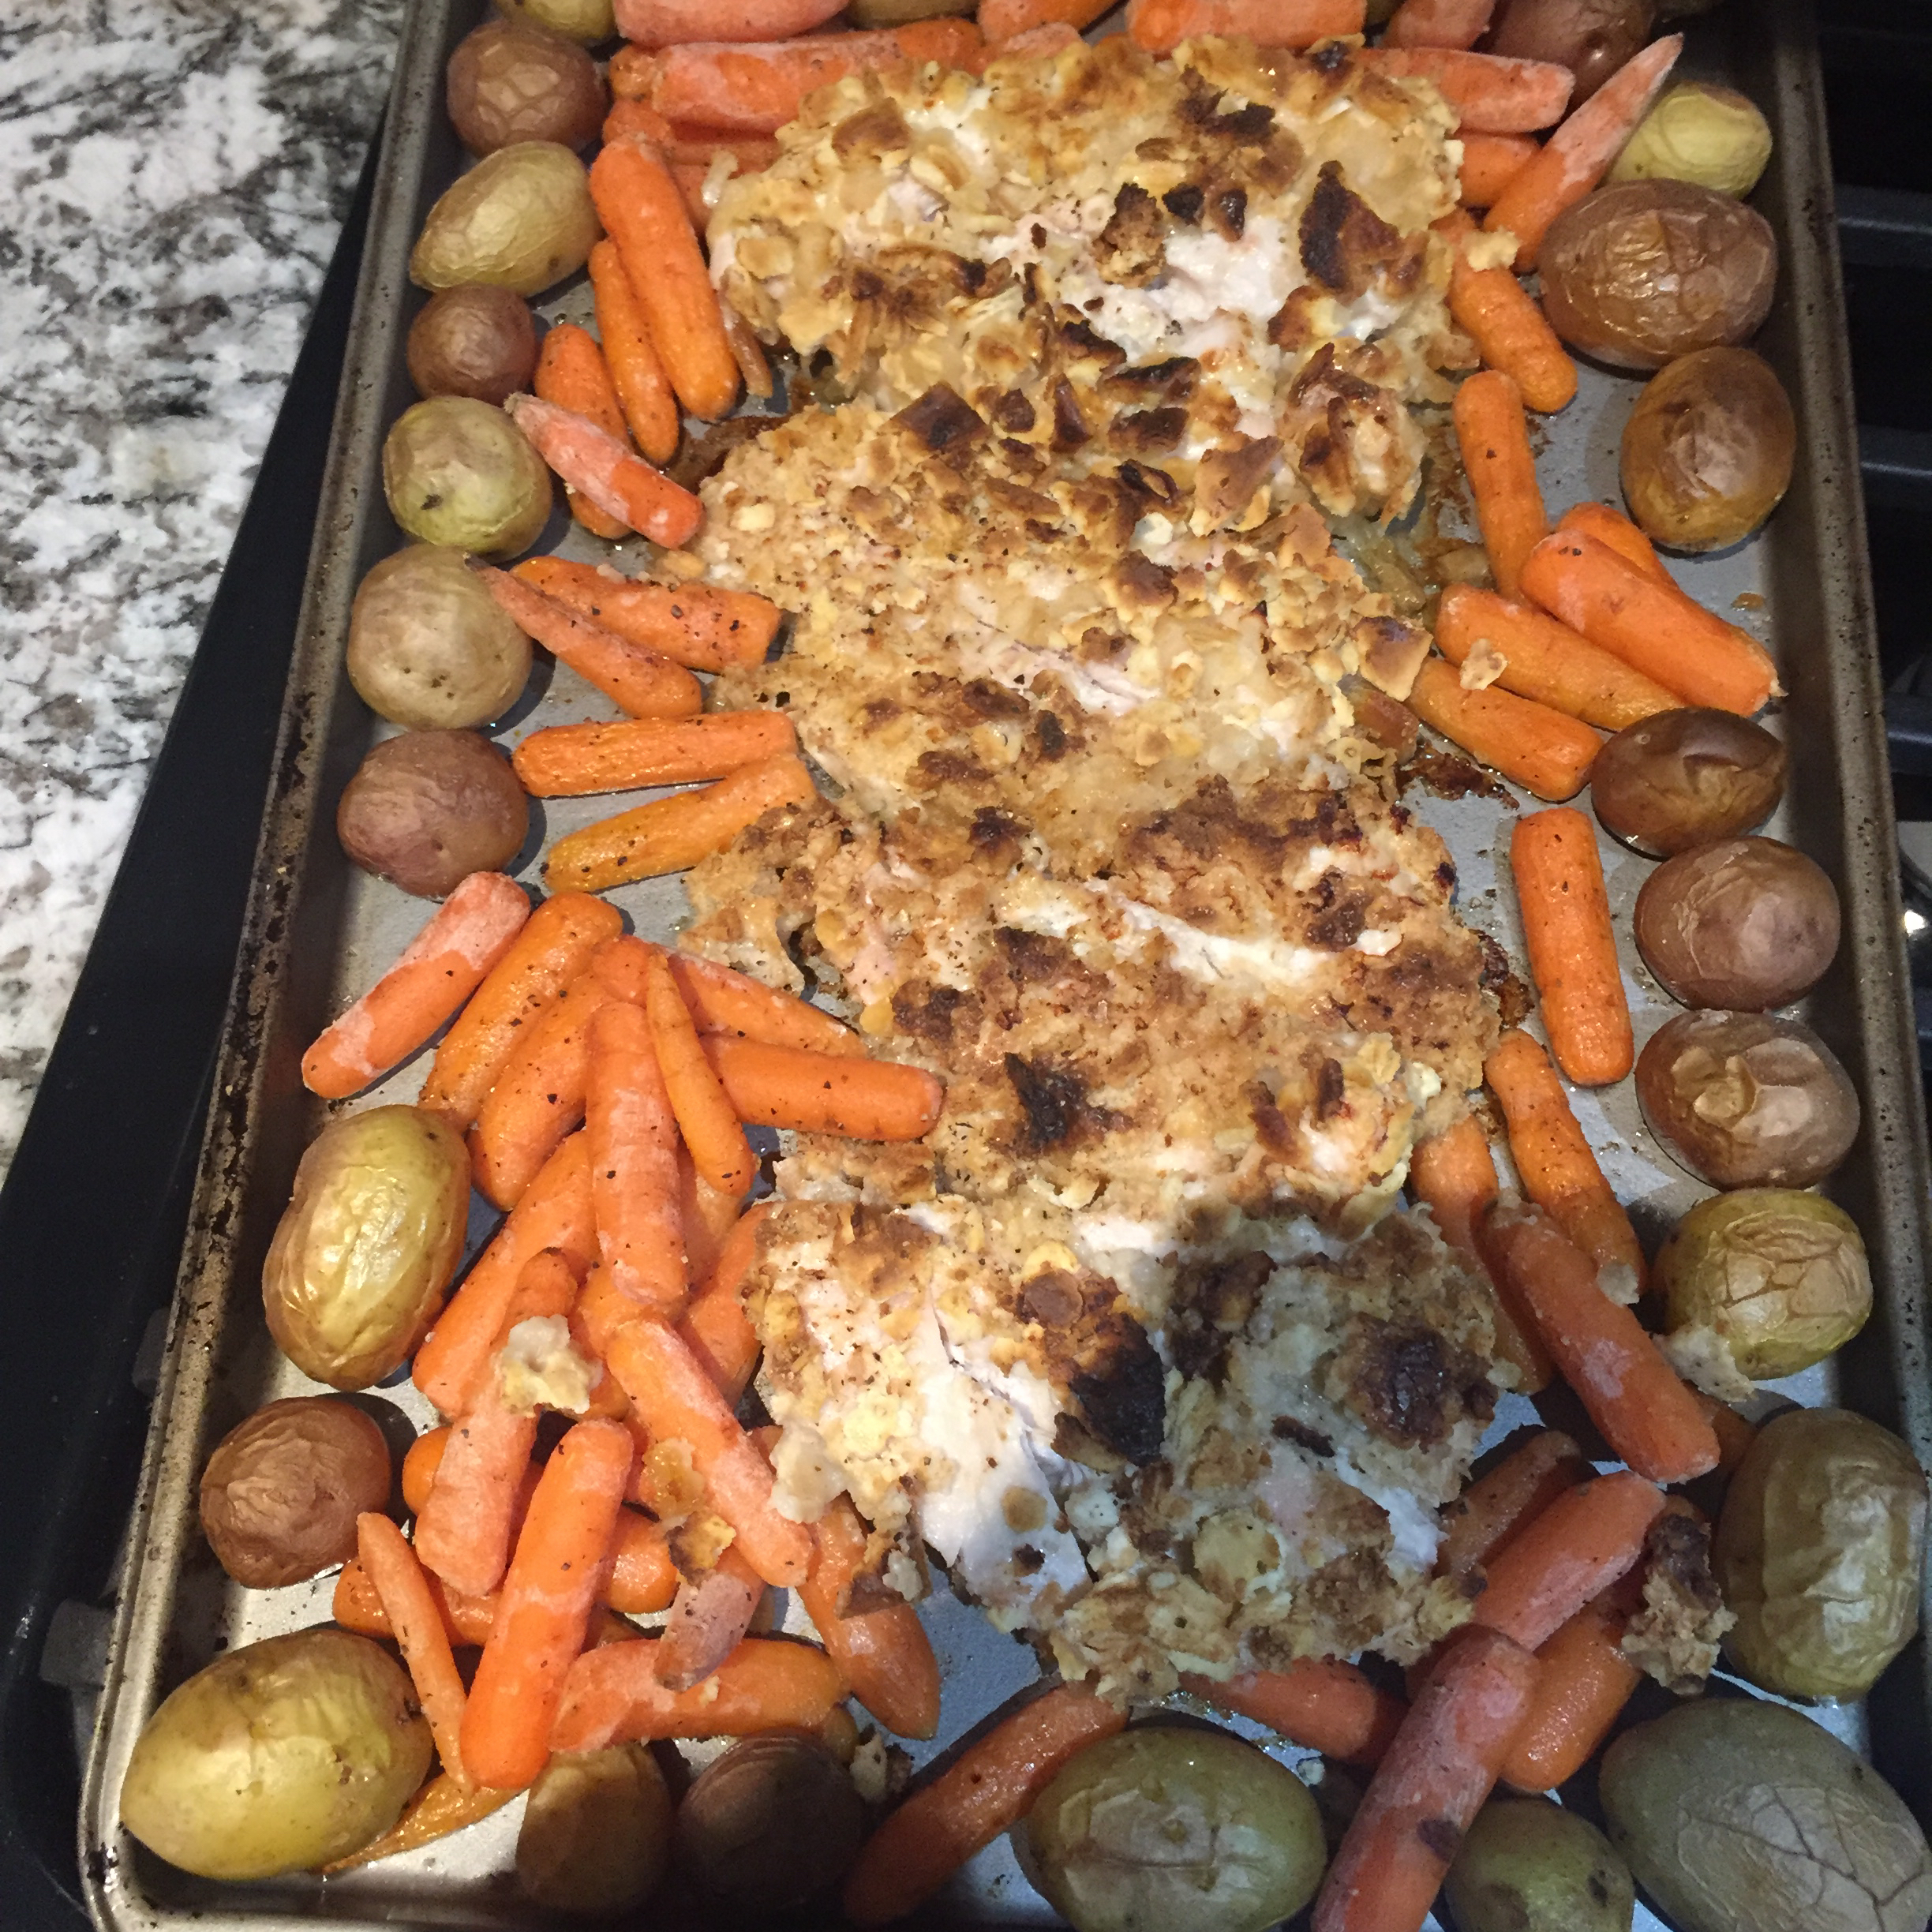 Sheet Pan Dinner with Chicken and Veggies jj6065